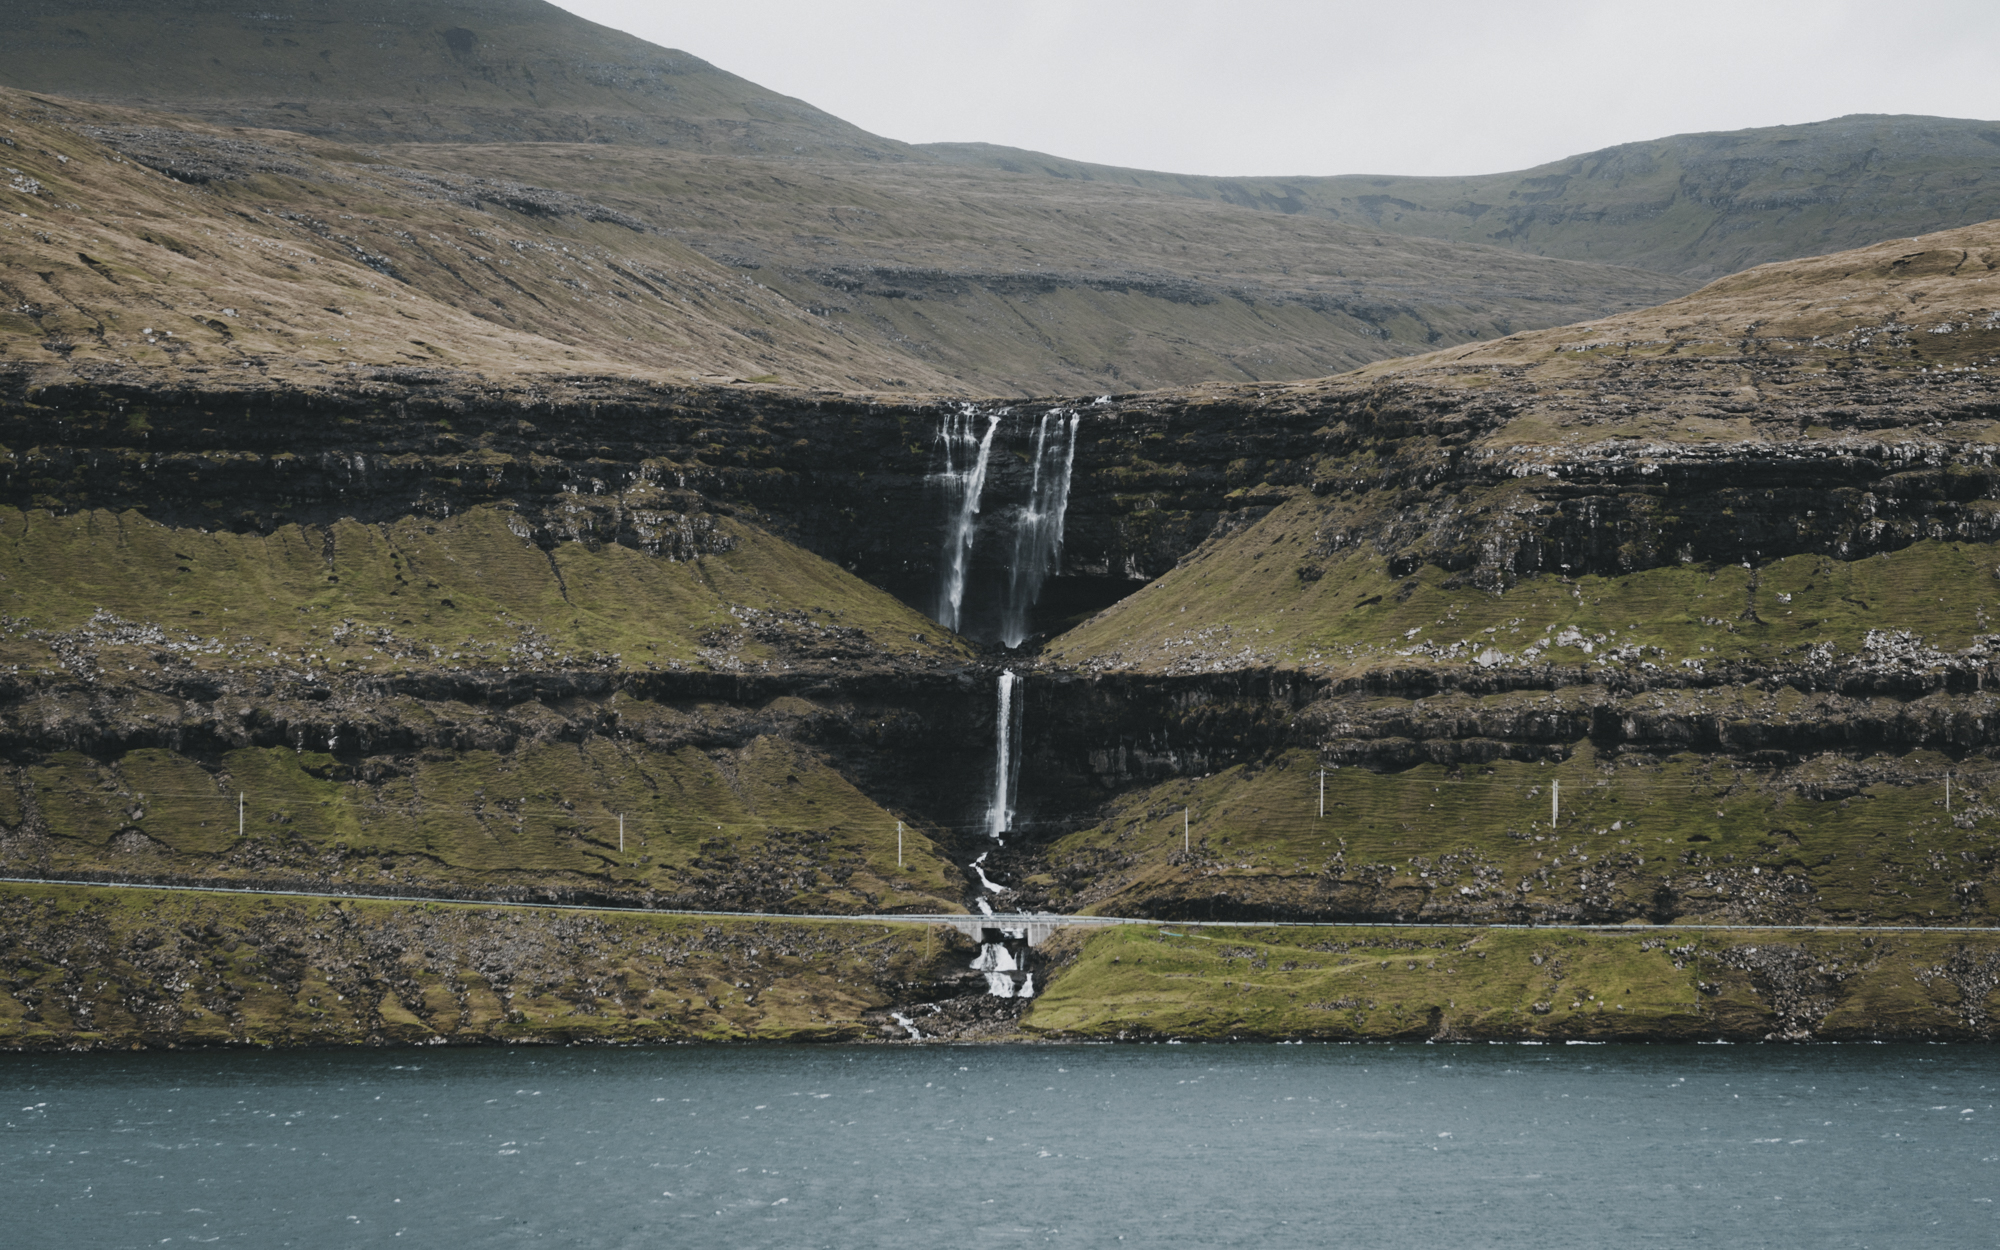 faroe-islands-47.jpg